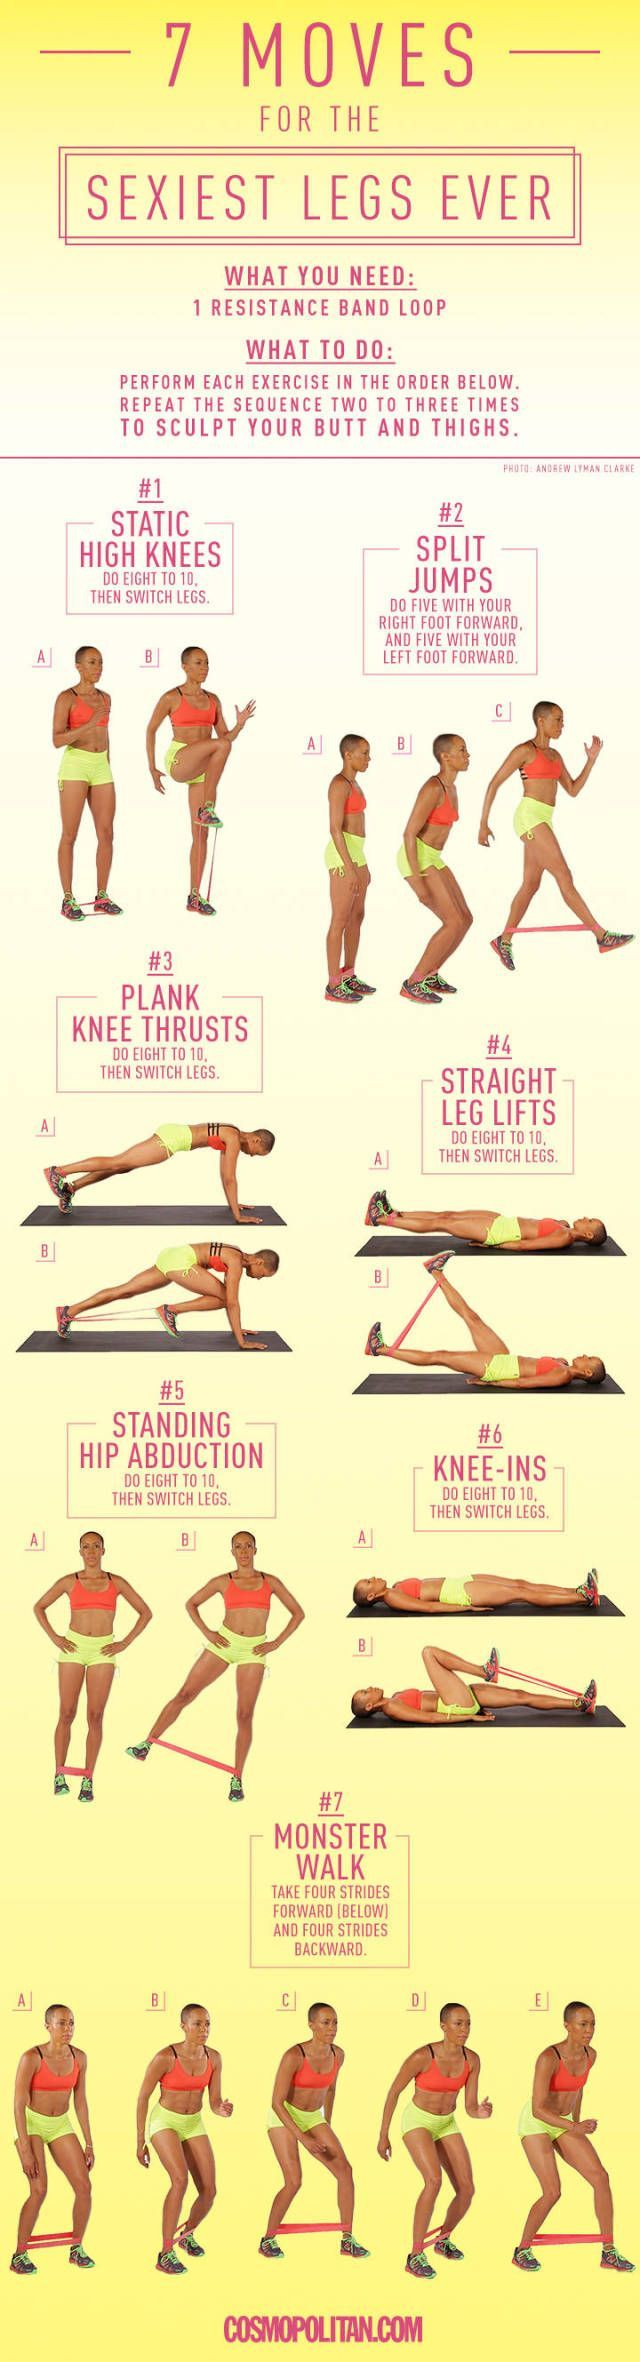 7 Exercises for the Sexiest Legs Ever #health #fitness #workout #Weightloss #musclebuilding #exercise #tips http://www.walktc.net/